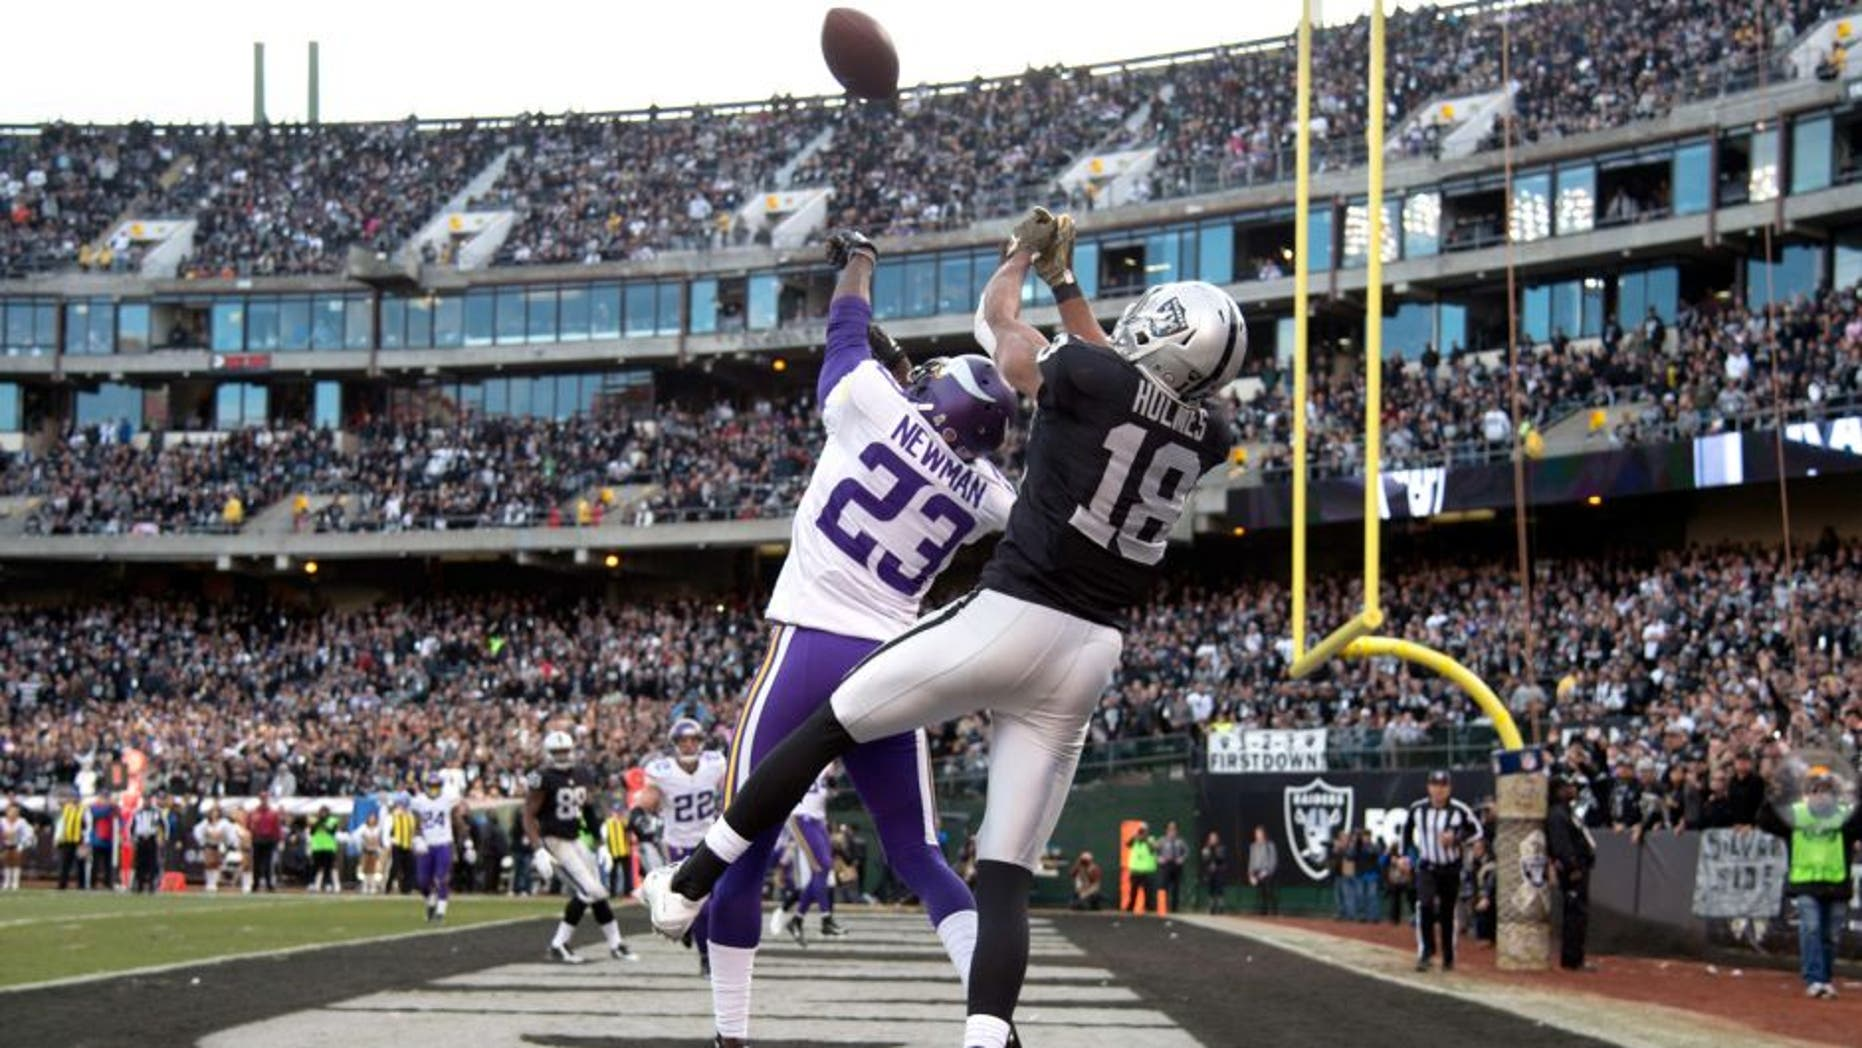 November 15, 2015; Oakland, CA, USA; Minnesota Vikings cornerback Terence Newman (23) intercepts the football intended for Oakland Raiders wide receiver Andre Holmes (18) during the fourth quarter at O.co Coliseum. The Vikings defeated the Raiders 30-14. Mandatory Credit: Kyle Terada-USA TODAY Sports